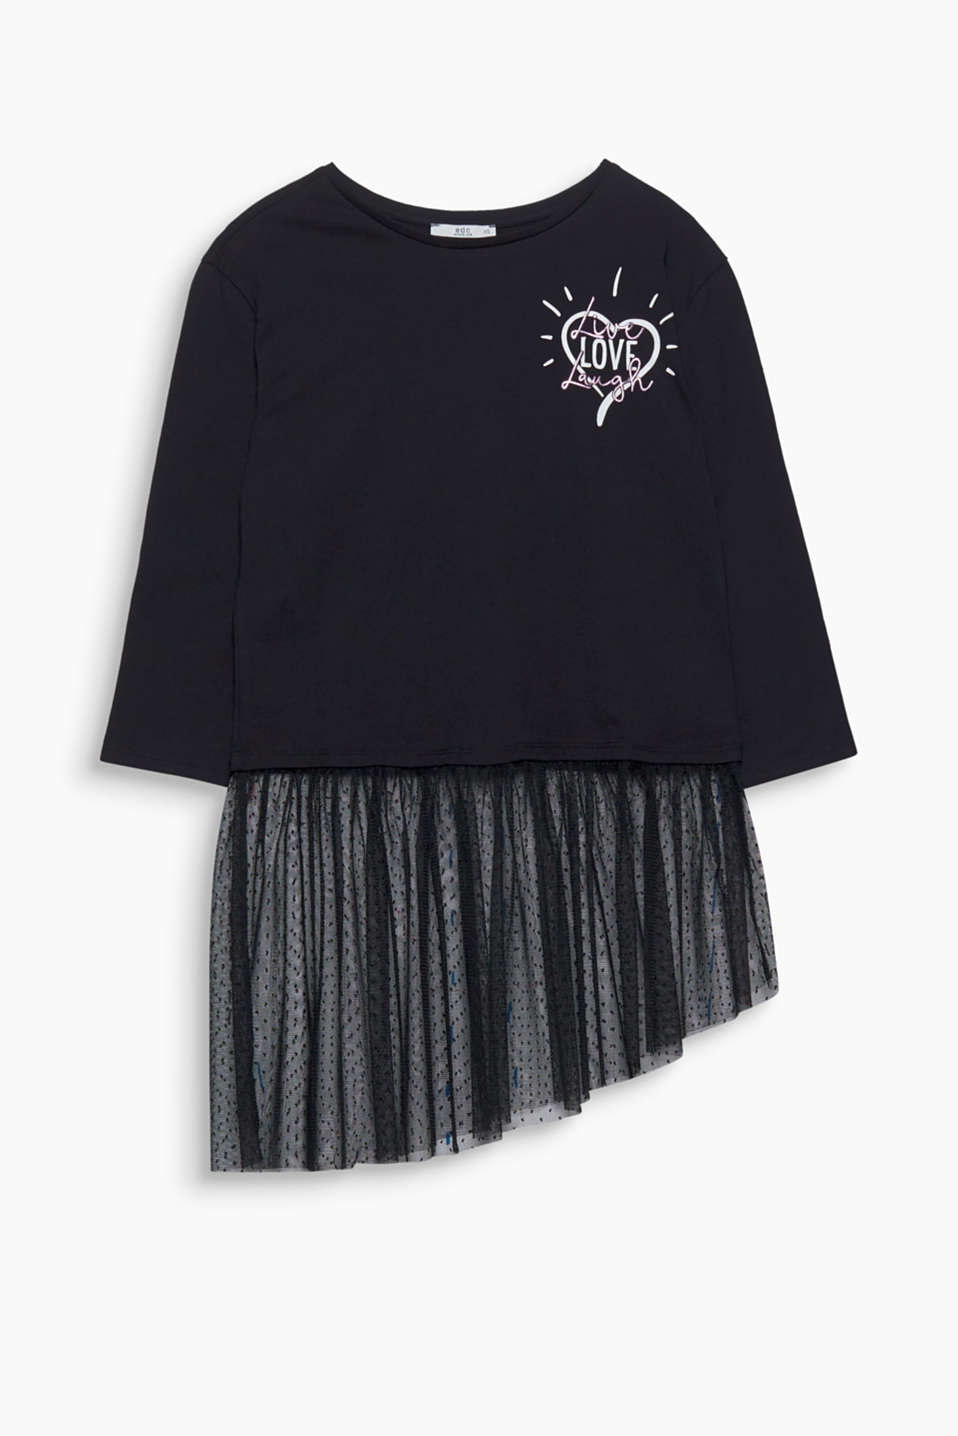 A material mix with jersey and tulle gives this top its fashionable look.